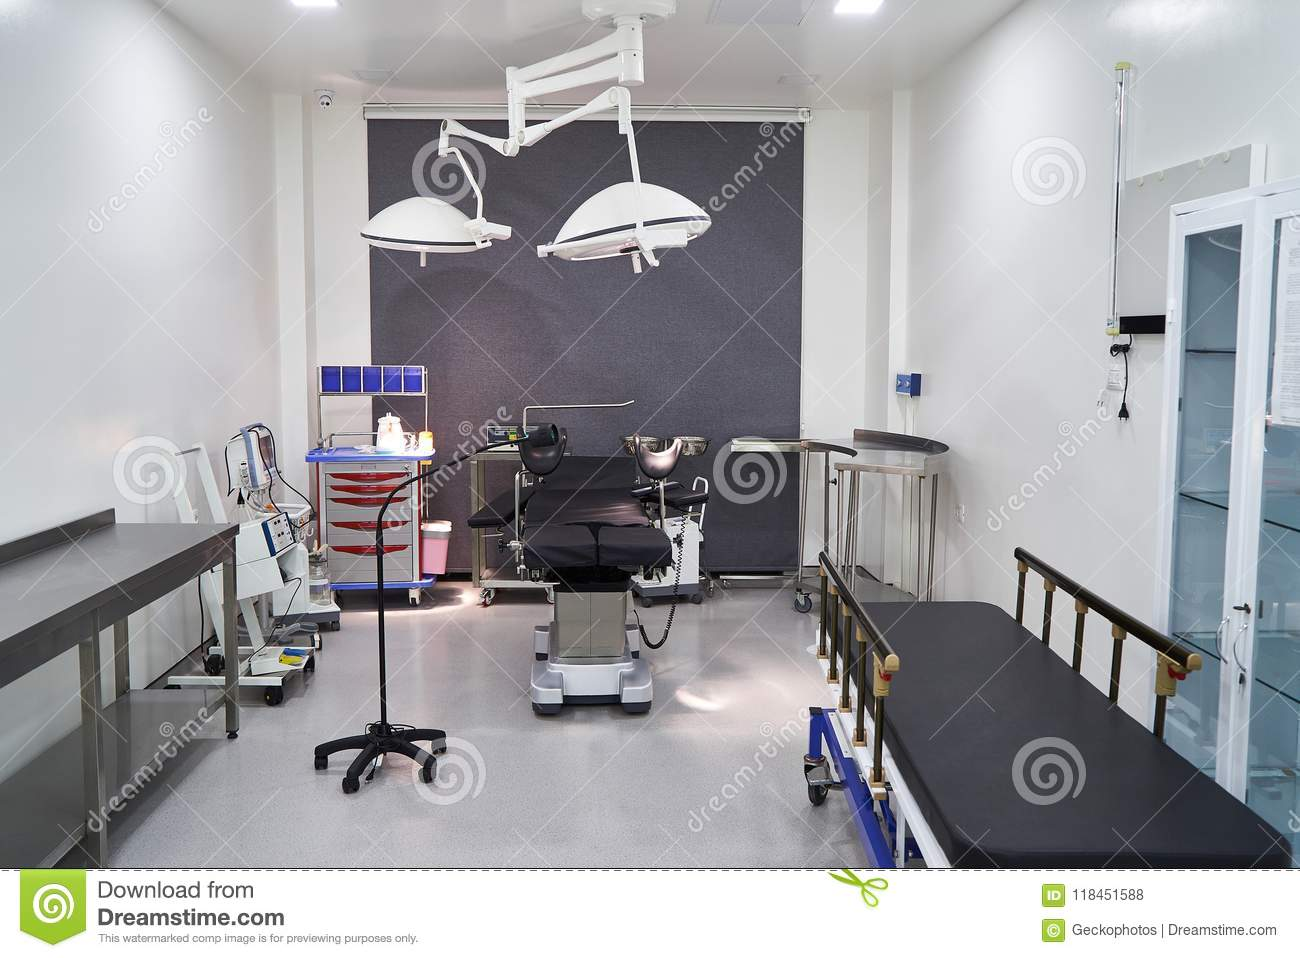 Hospital Room Interior With Beds Stock Photo Image Of Operating